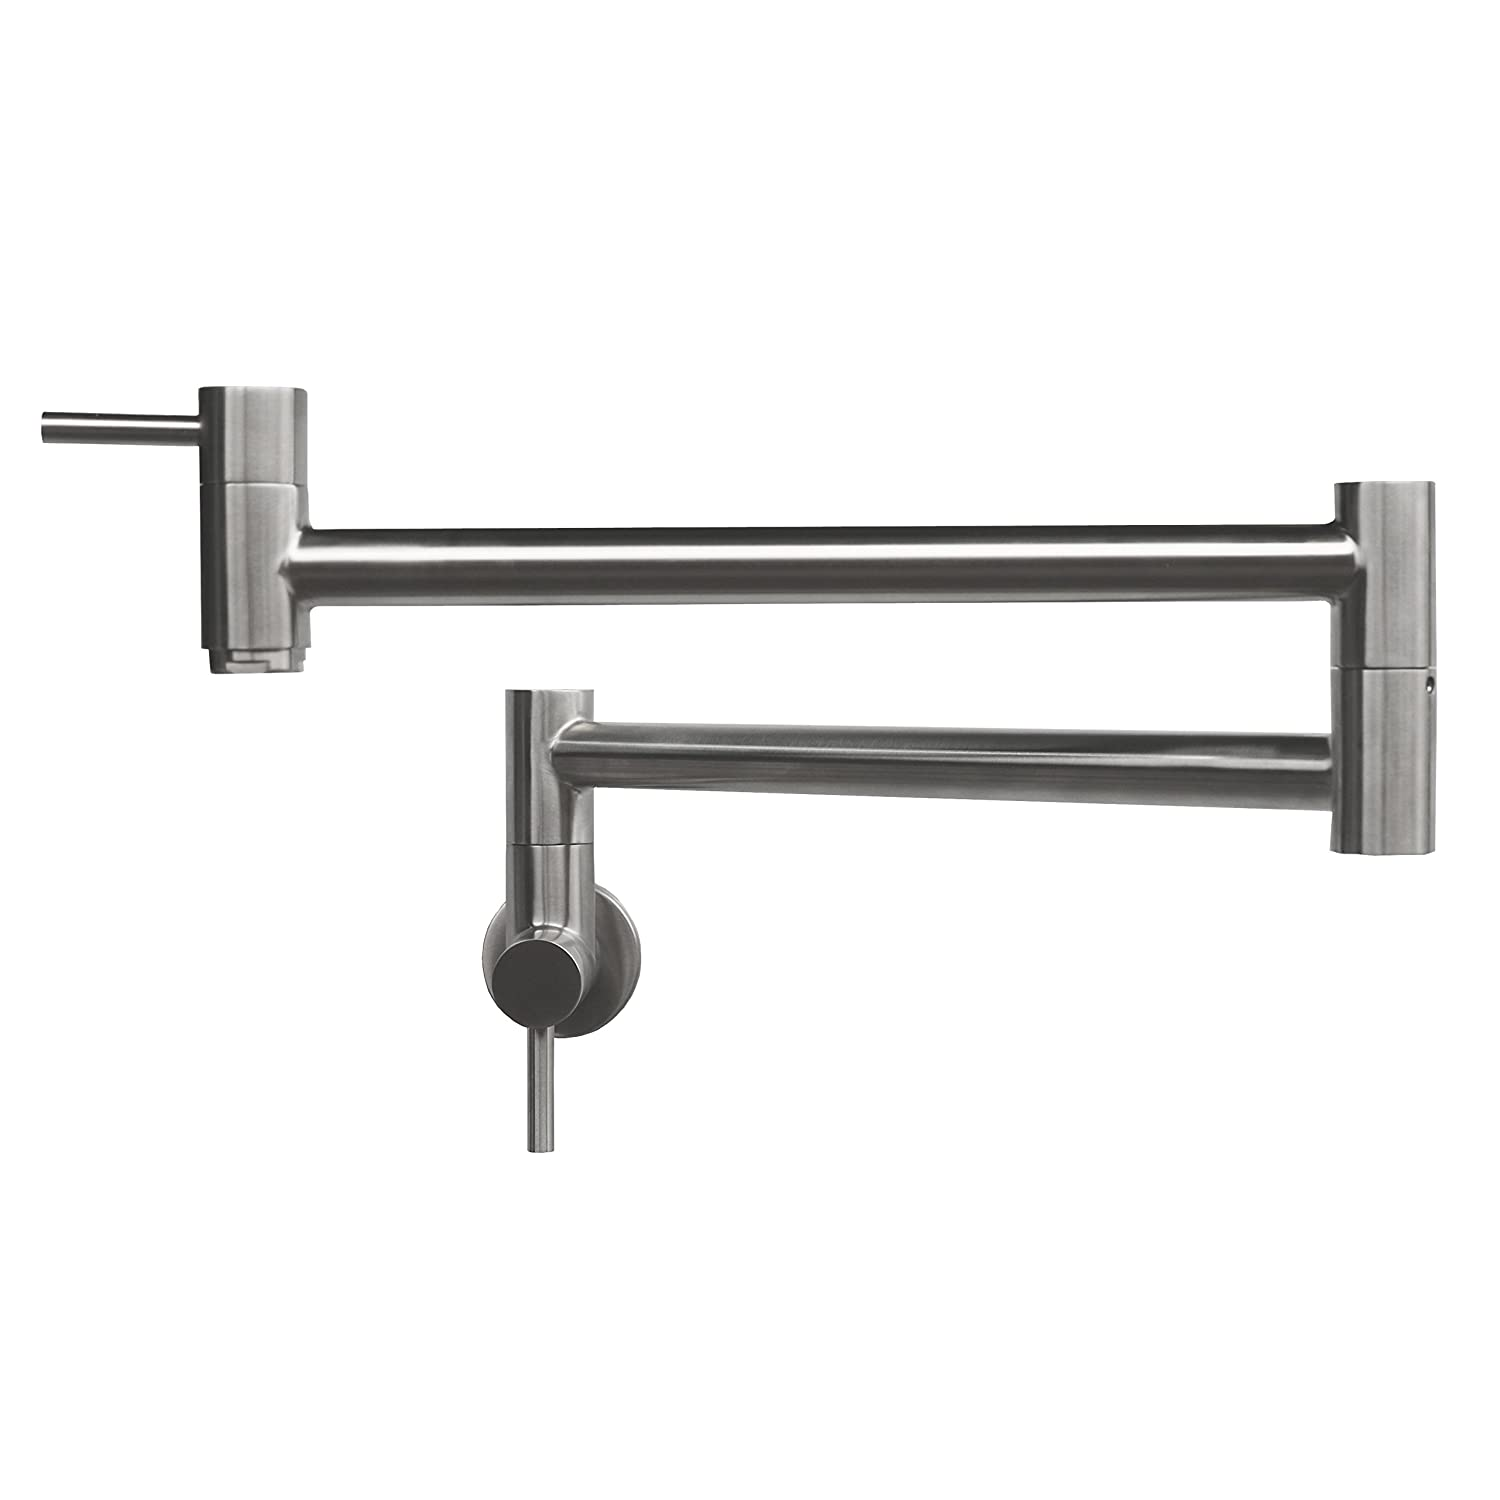 Geyser GF45-B Stainless Steel Pot Filler Kitchen Faucet Wall Mount 2 Handles GF45-S